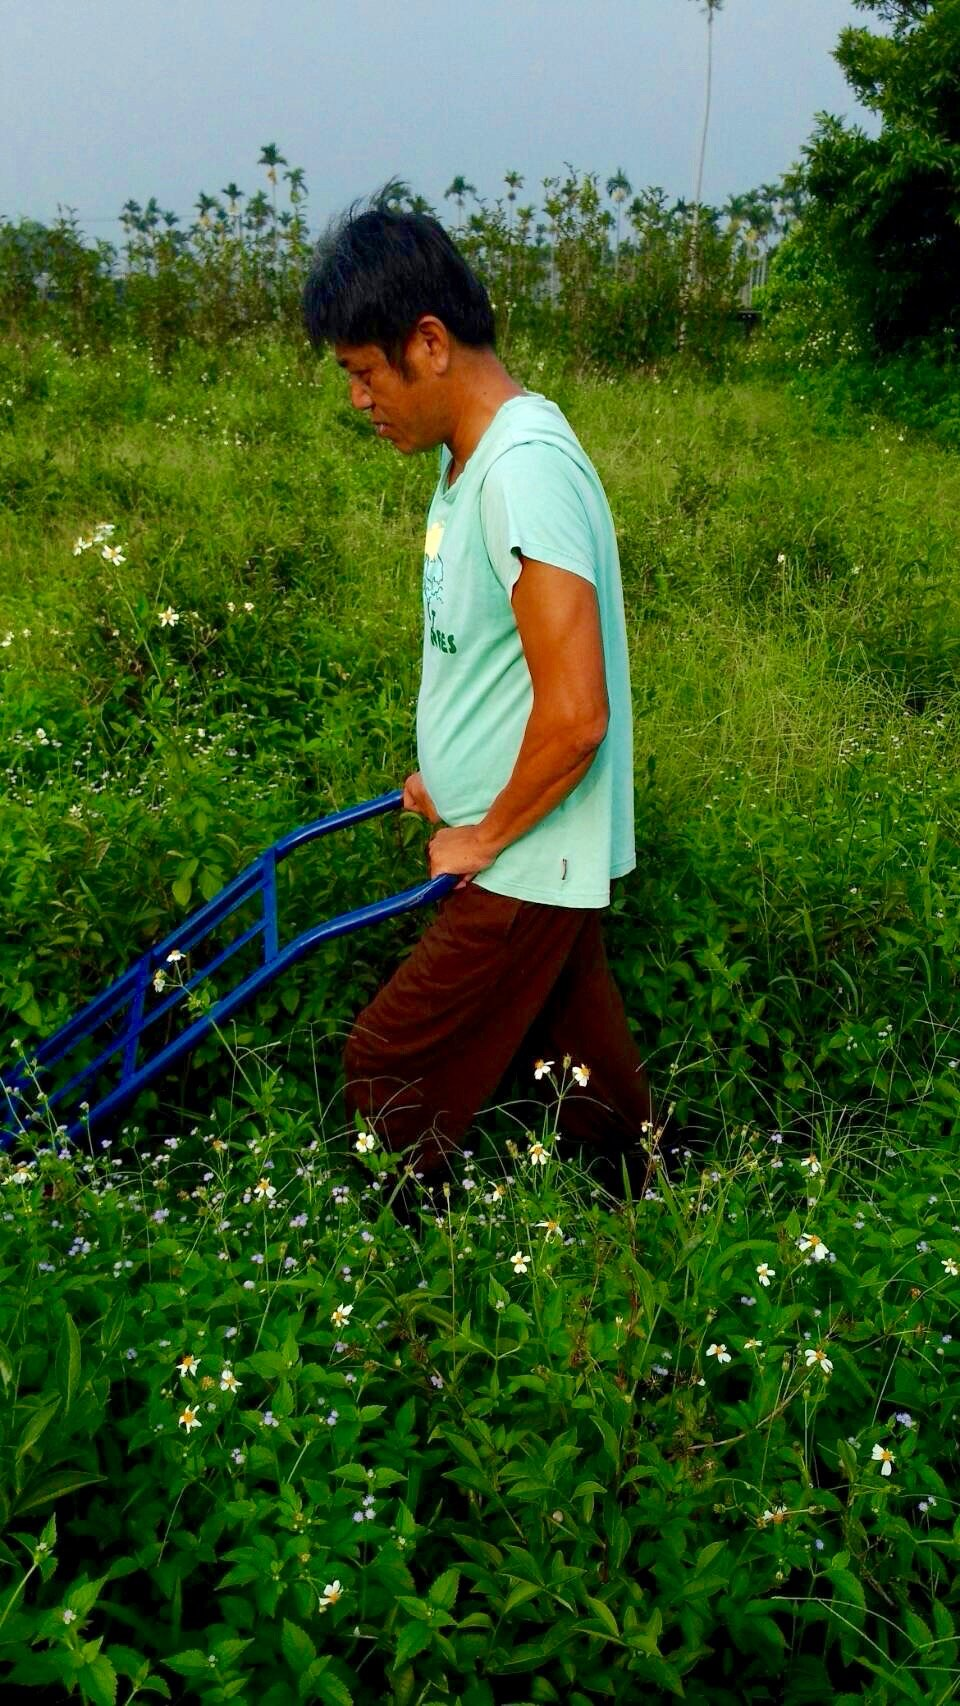 Eco-Farming methods of pushing down weeds with a hand truck